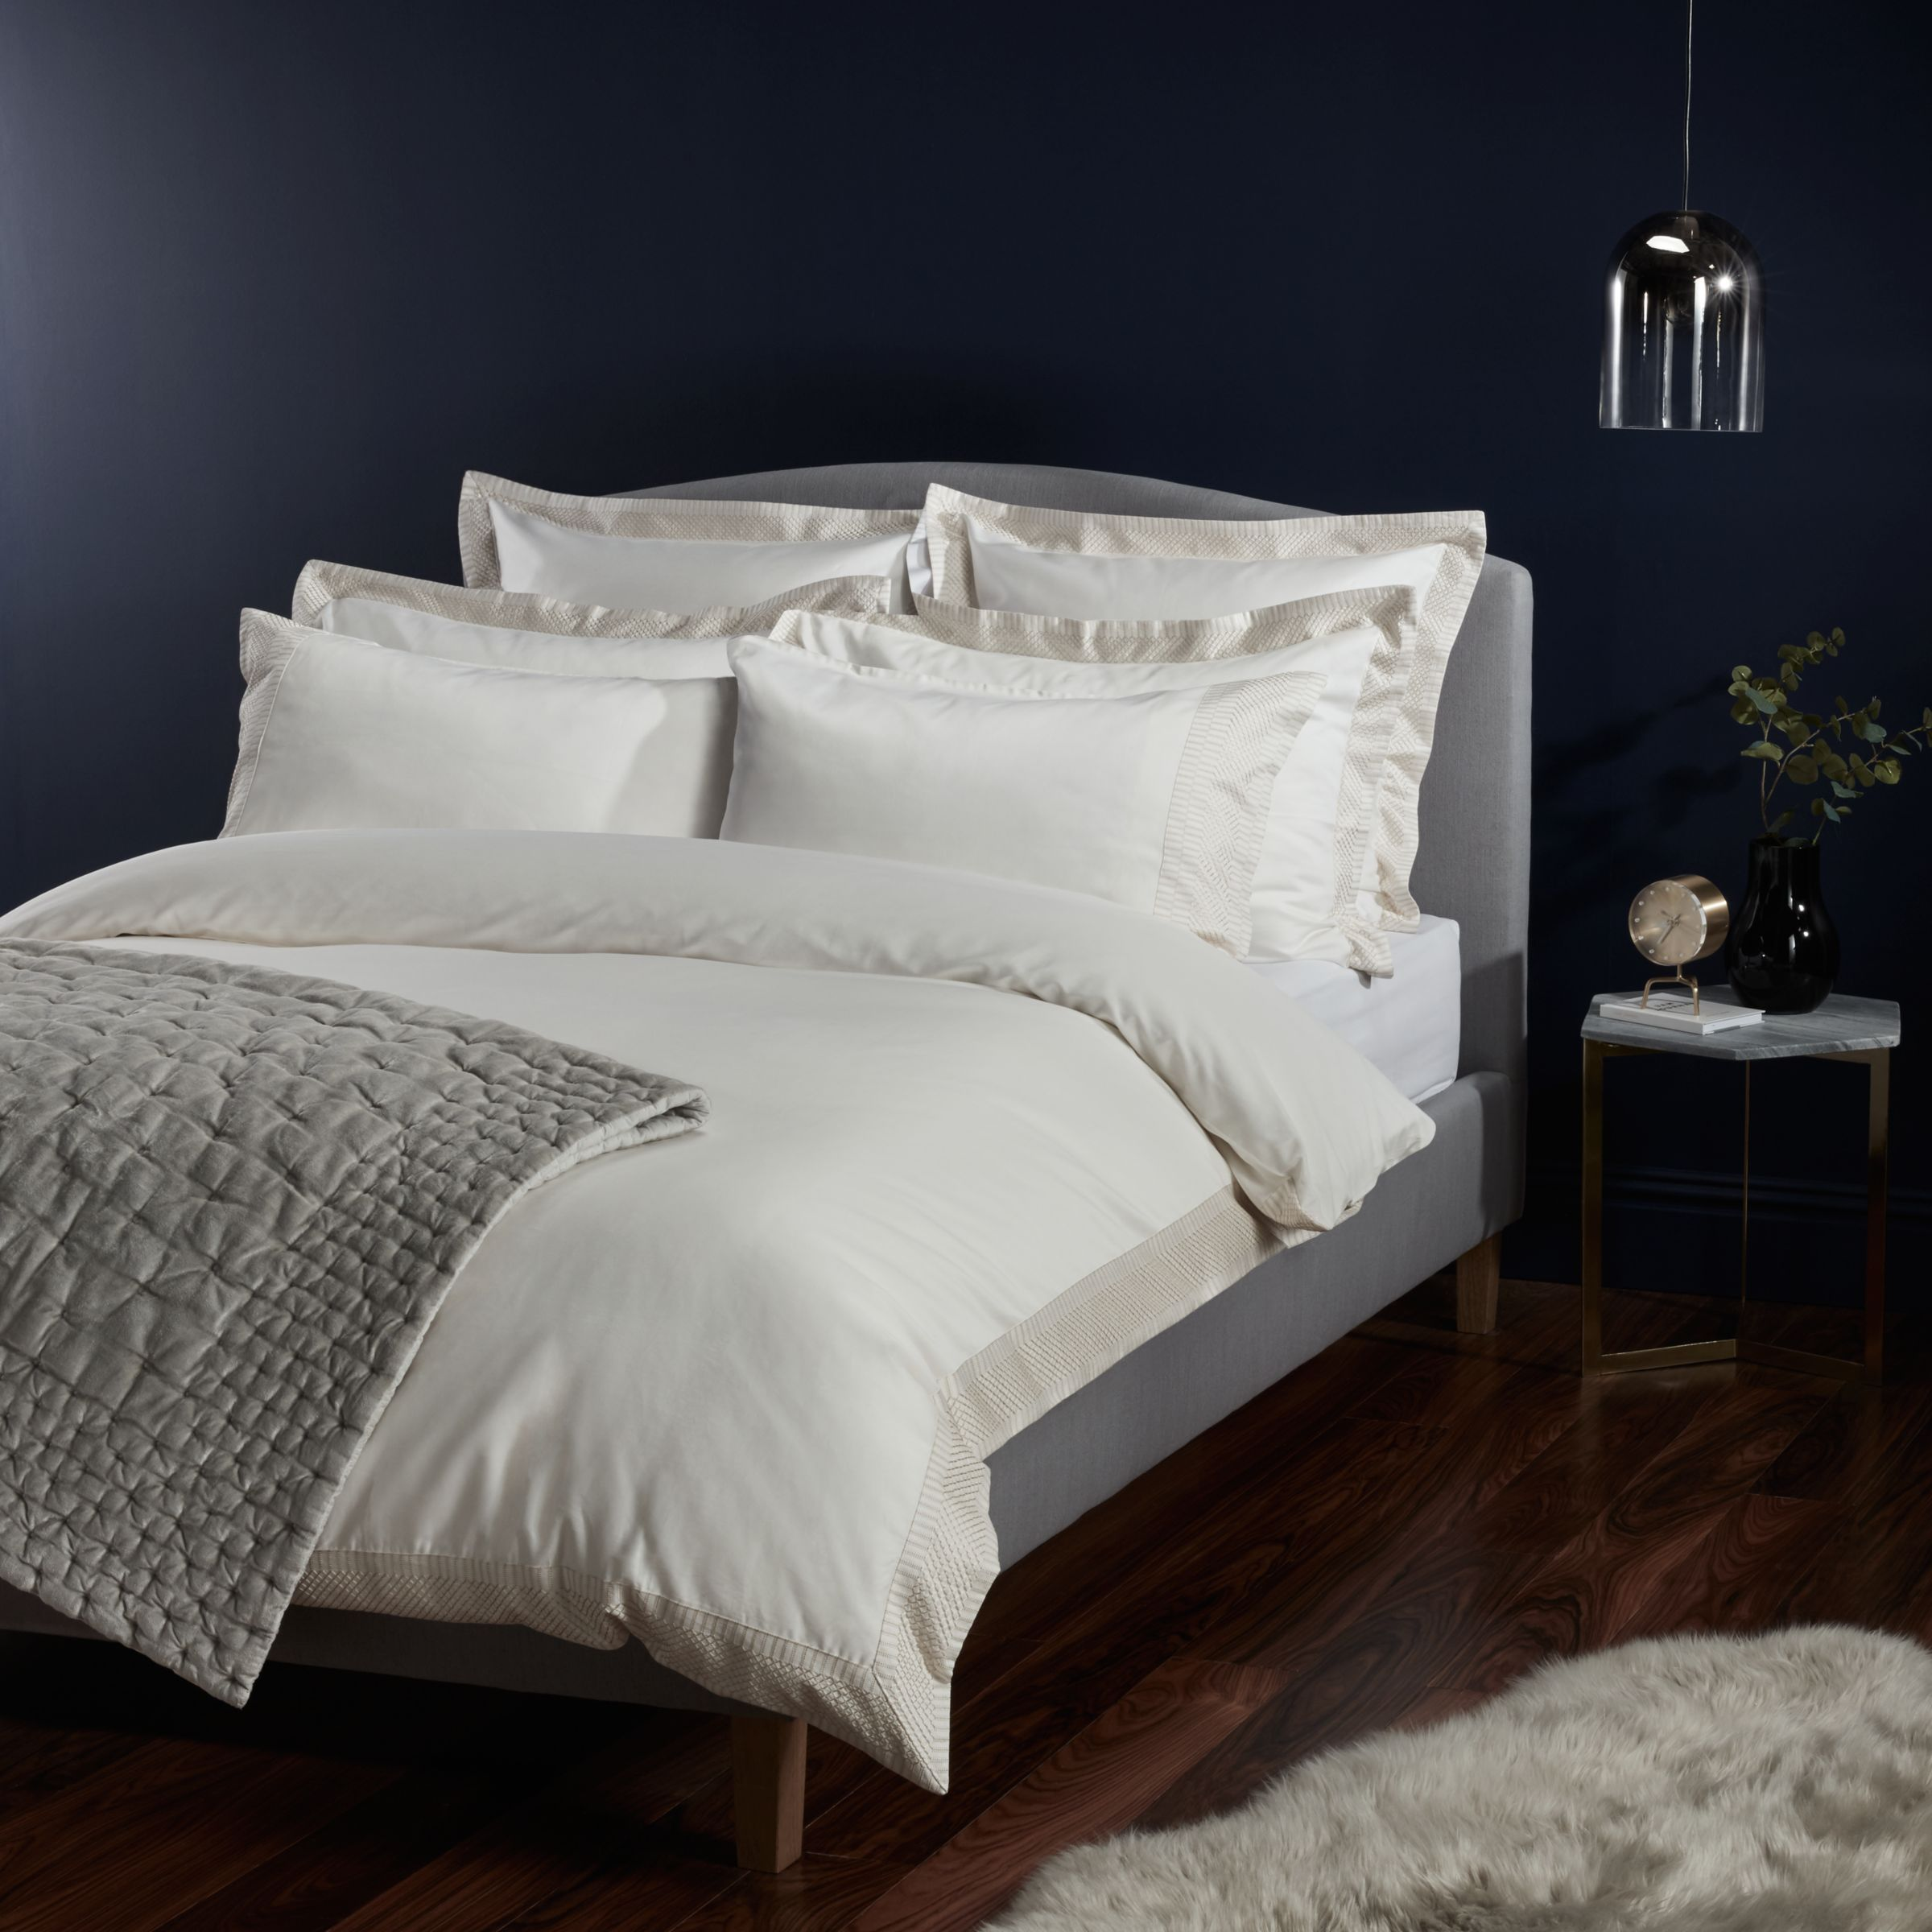 John Lewis & Partners Soft and Silky Treviso Cotton Duvet Covers and Pillowcases, Cream